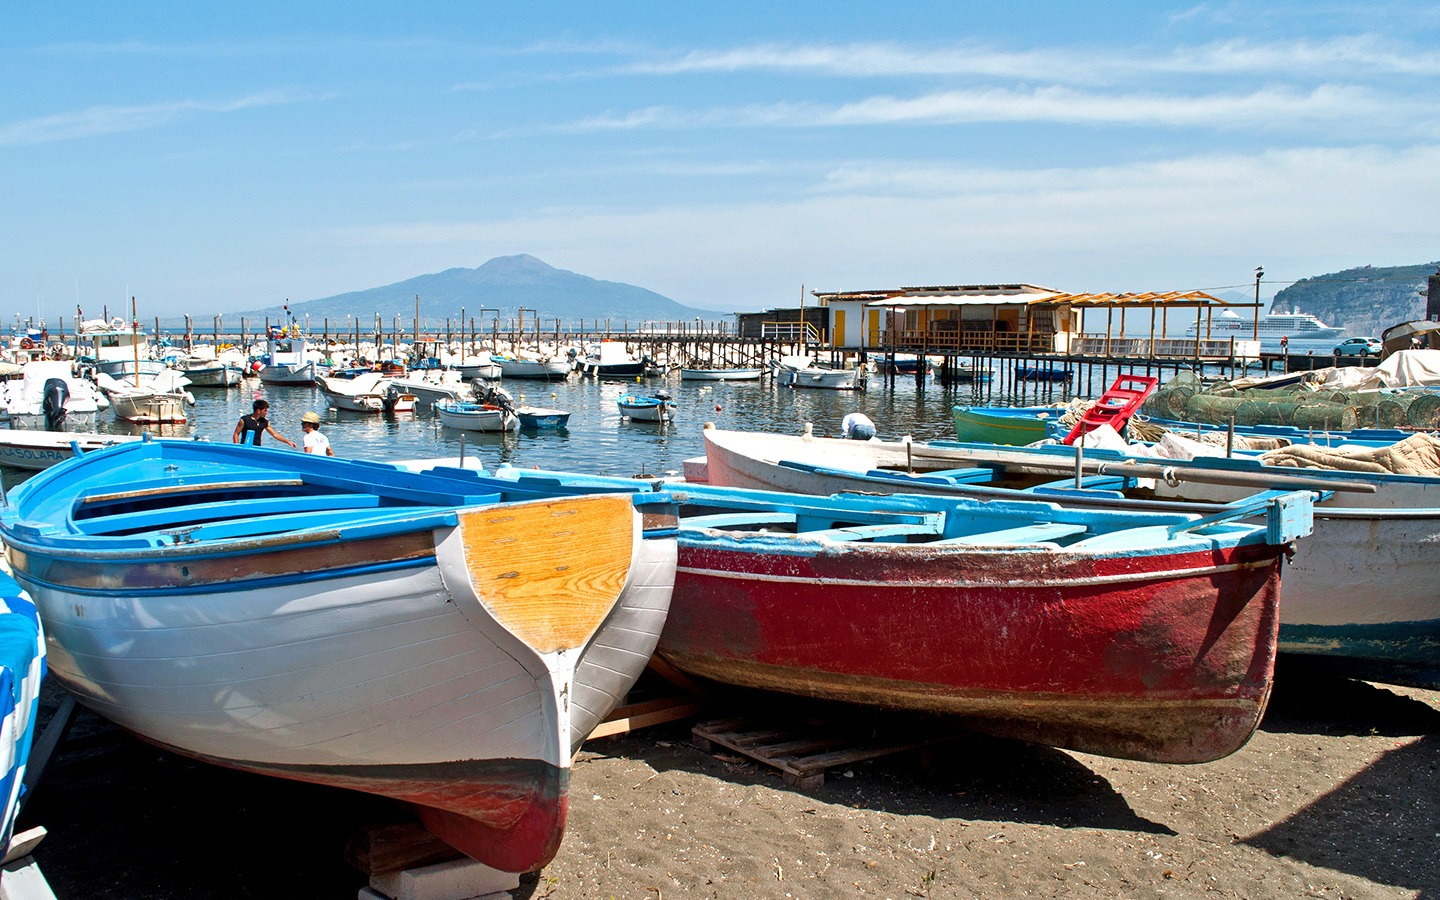 Boats in the harbour at Marina Grande Sorrento Italy